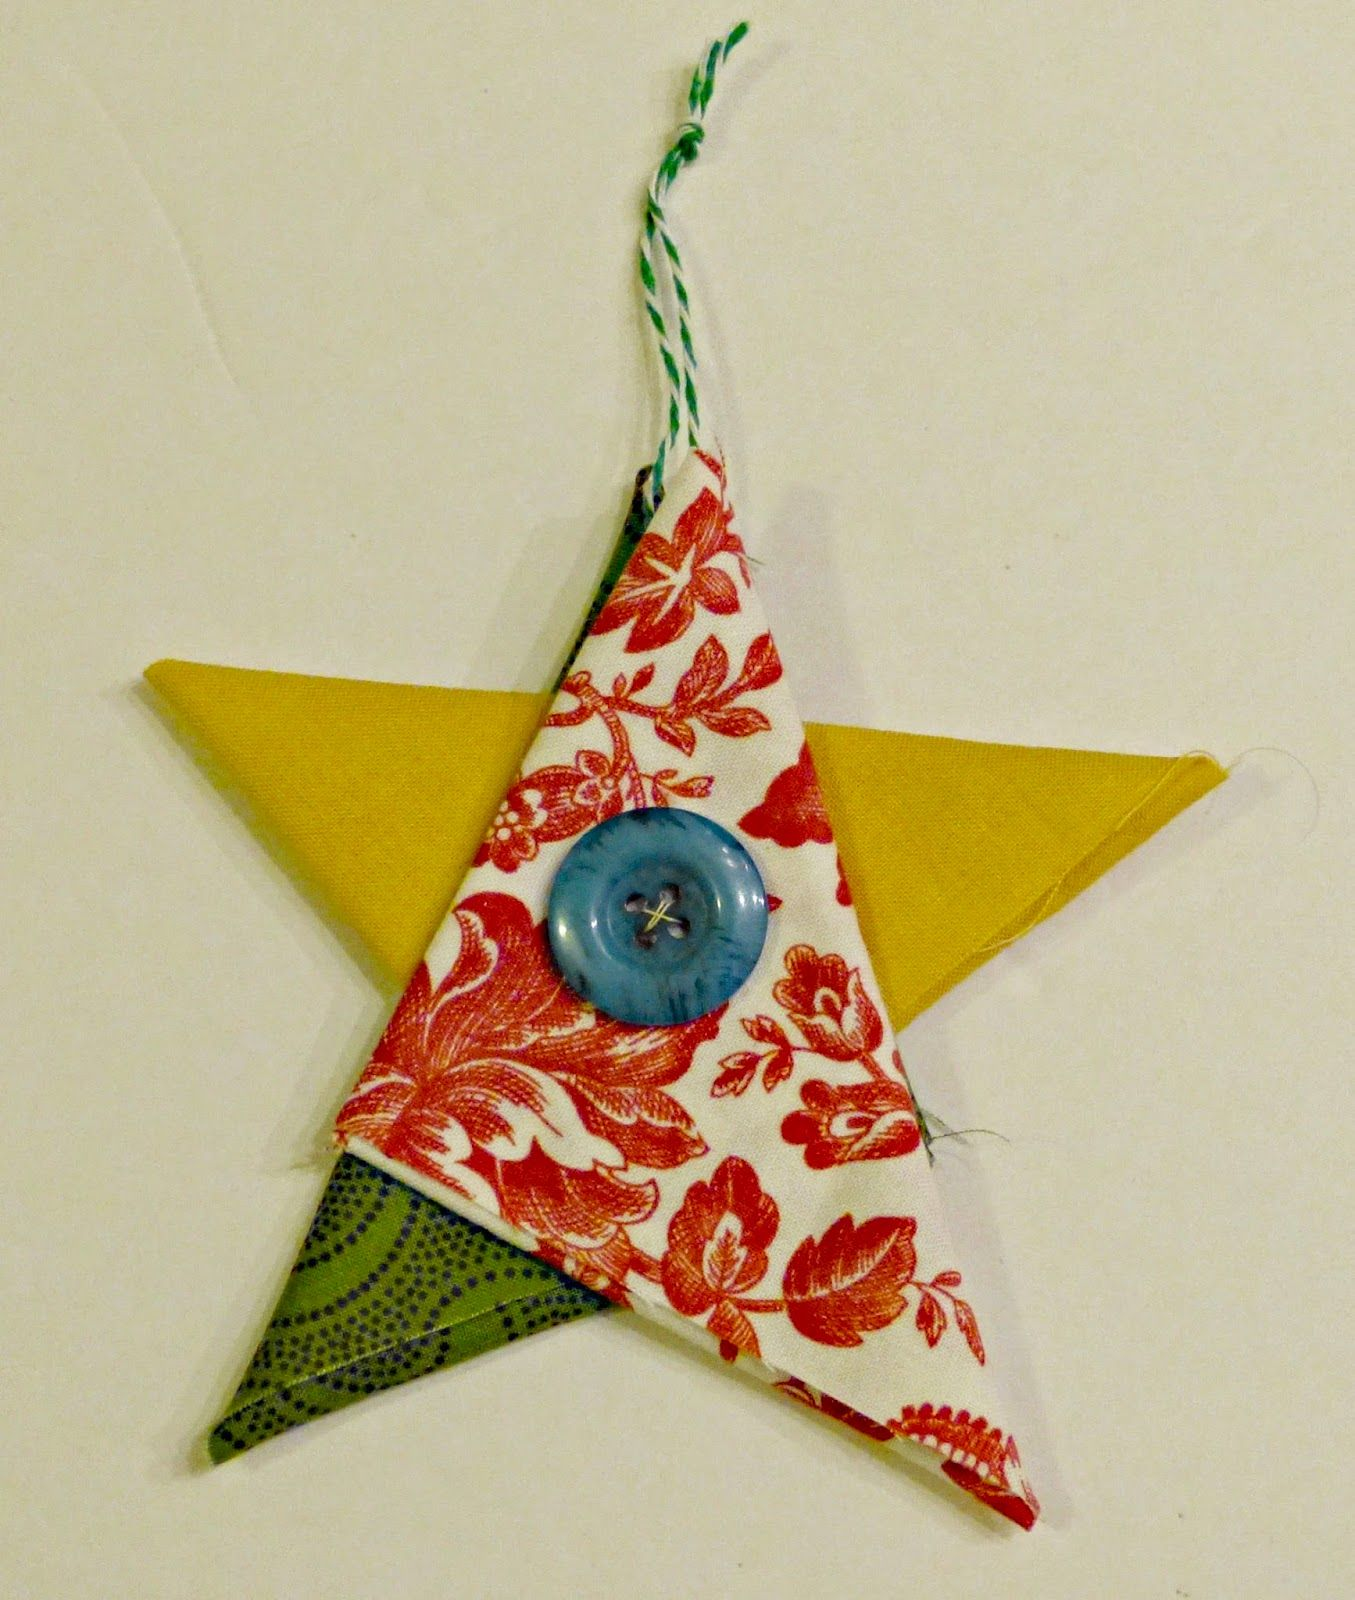 Folded Fabric Christmas Tree: I Learned How To Make These Adorable Folded Star Ornaments